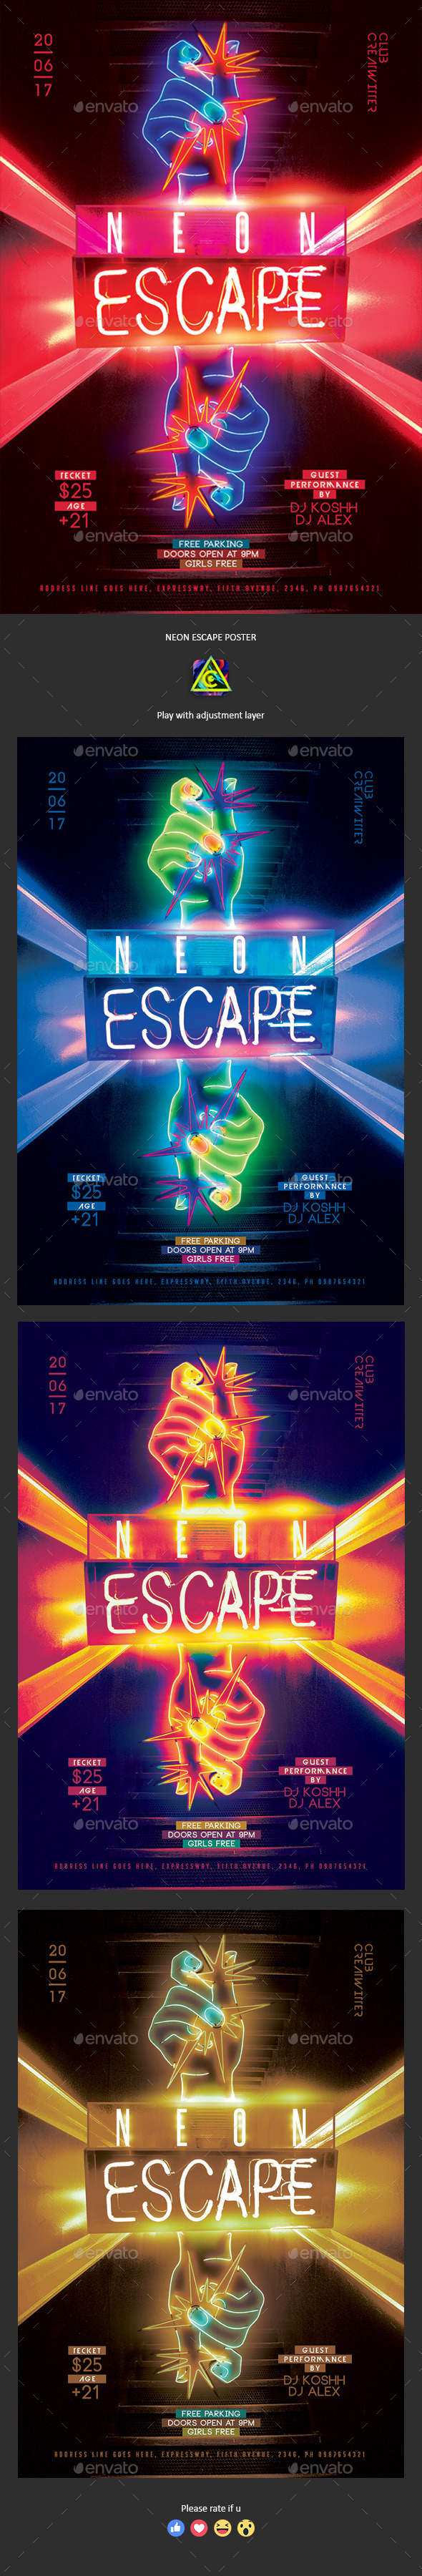 Neon Escape Poster / Flyer - Clubs & Parties Events